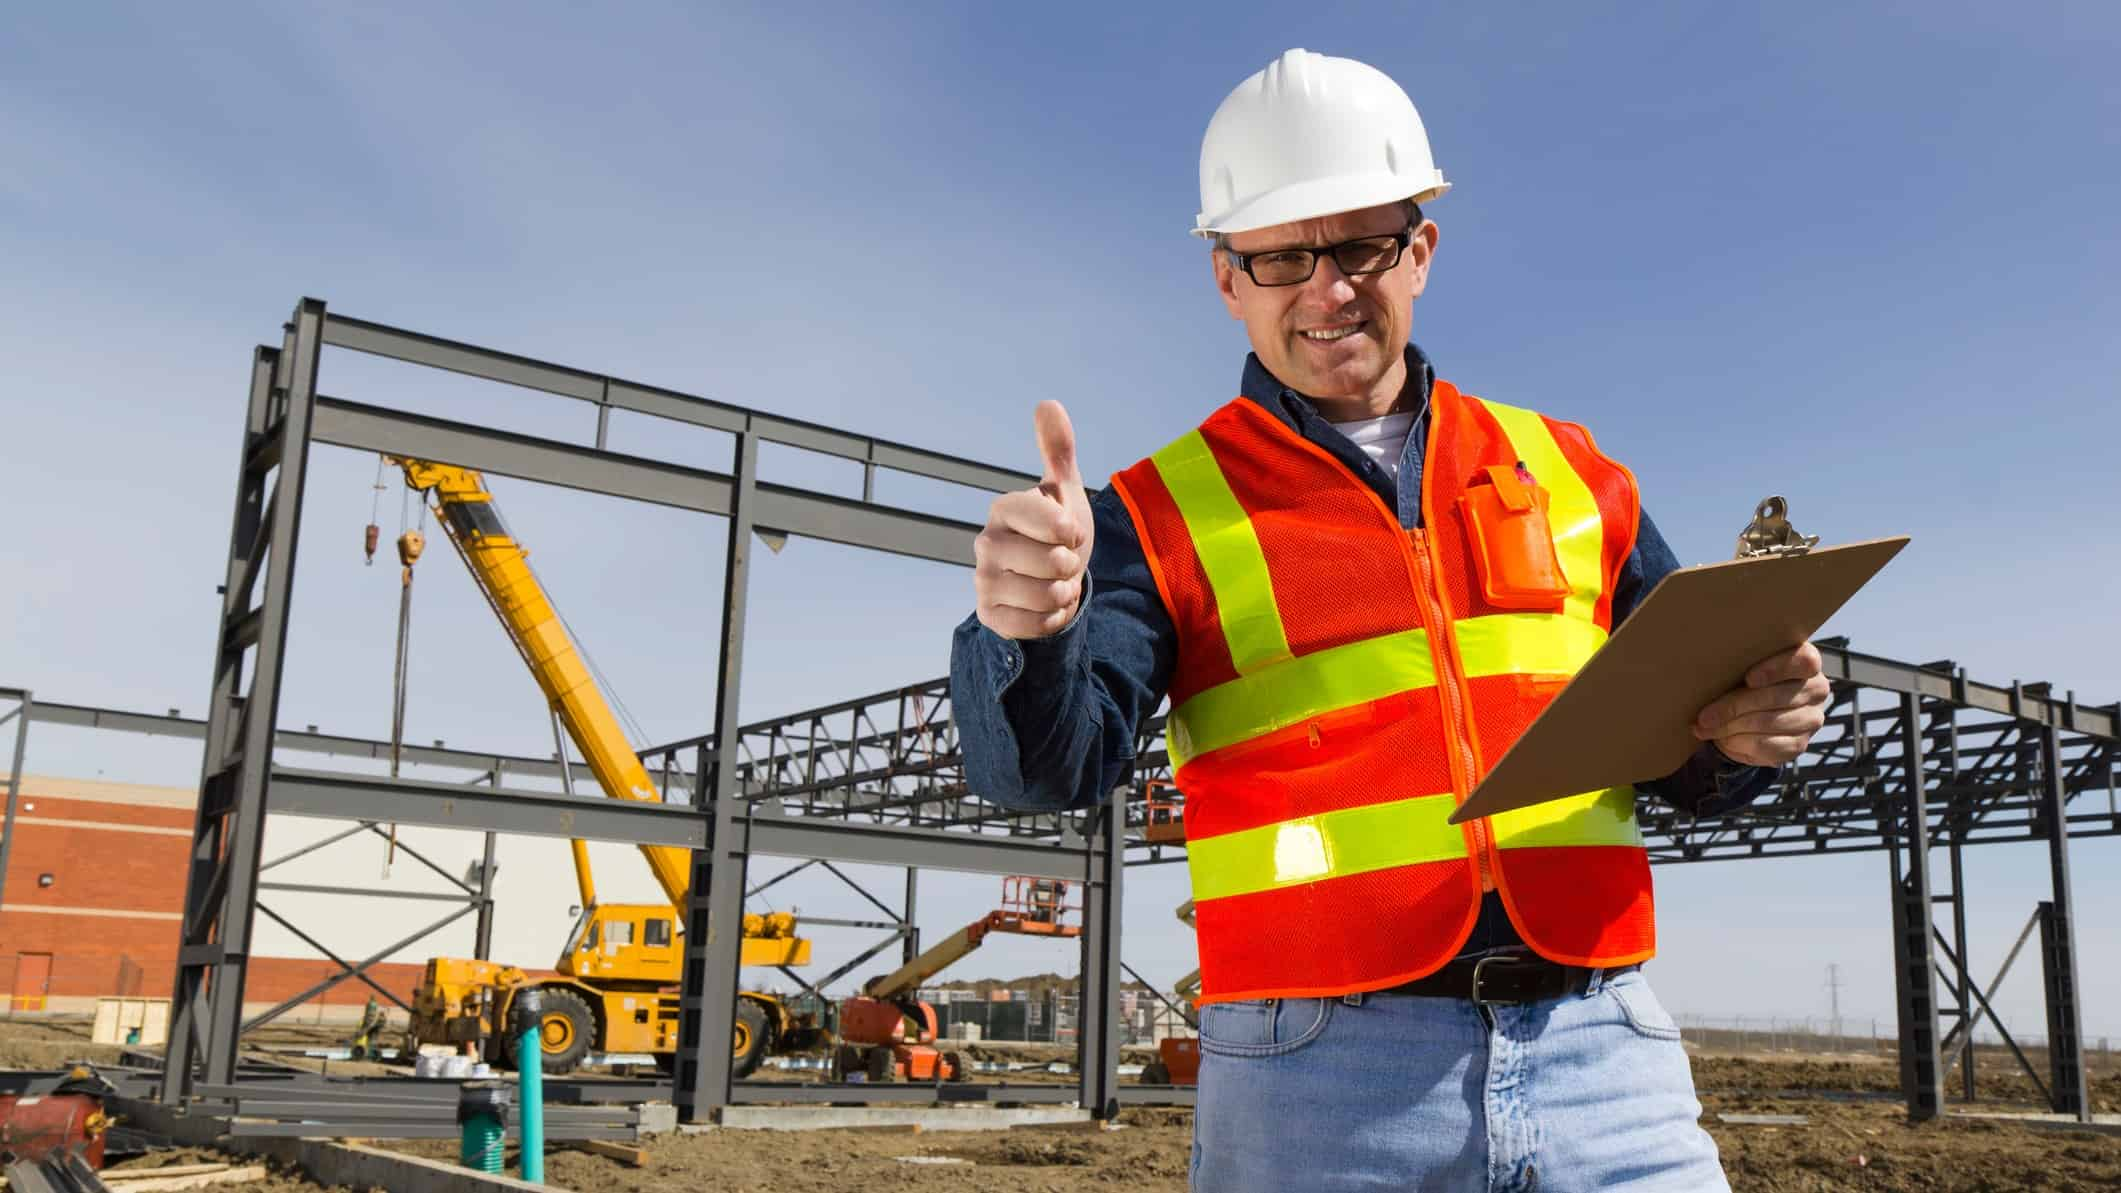 thumbs up from a construction worker in a construction site